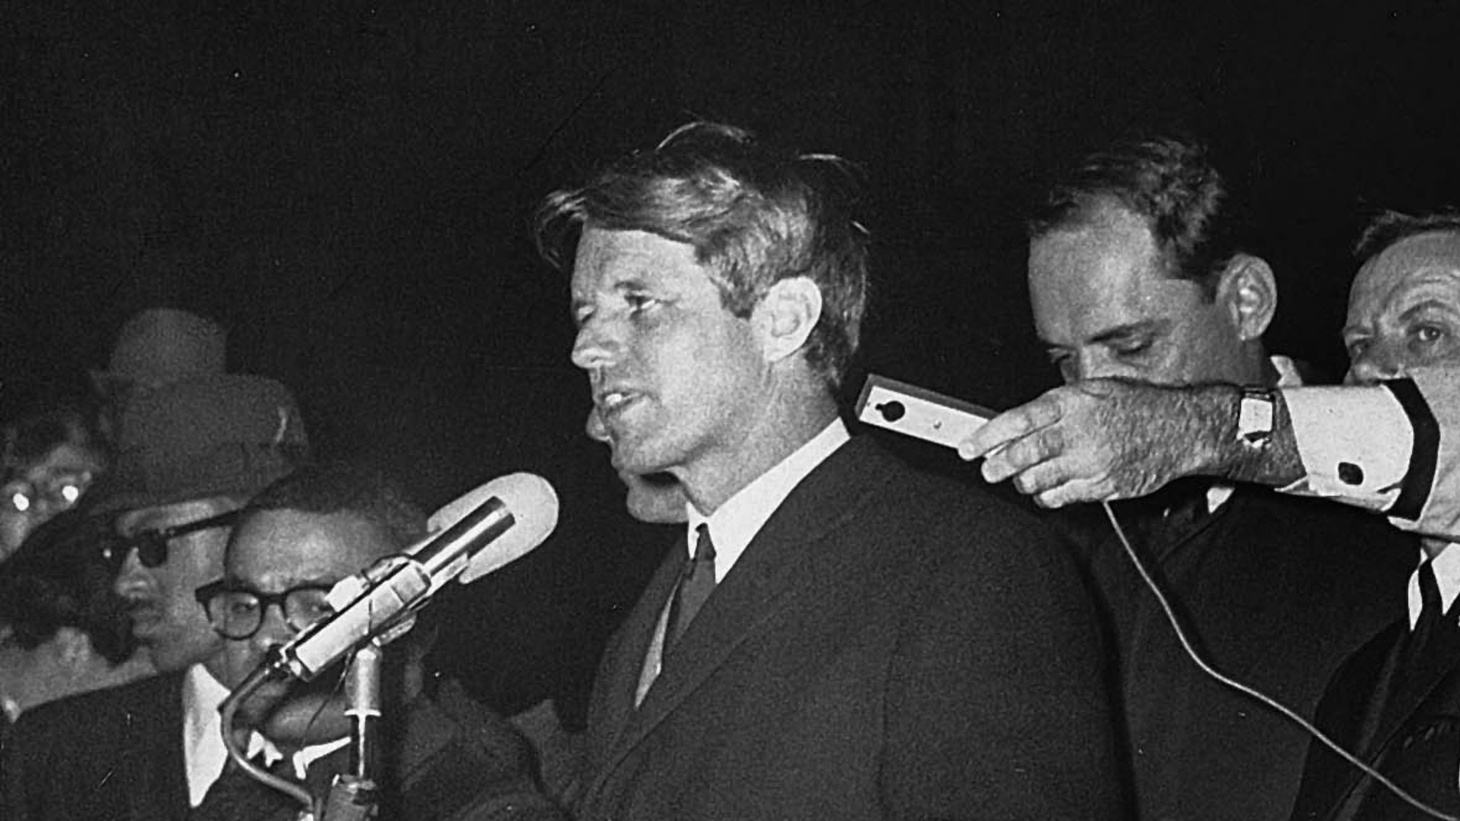 Bobby Kennedy had to address a campaign crowd the night that the Reverend Dr. Martin Luther King, Jr., was gunned down in Memphis, Tennessee.